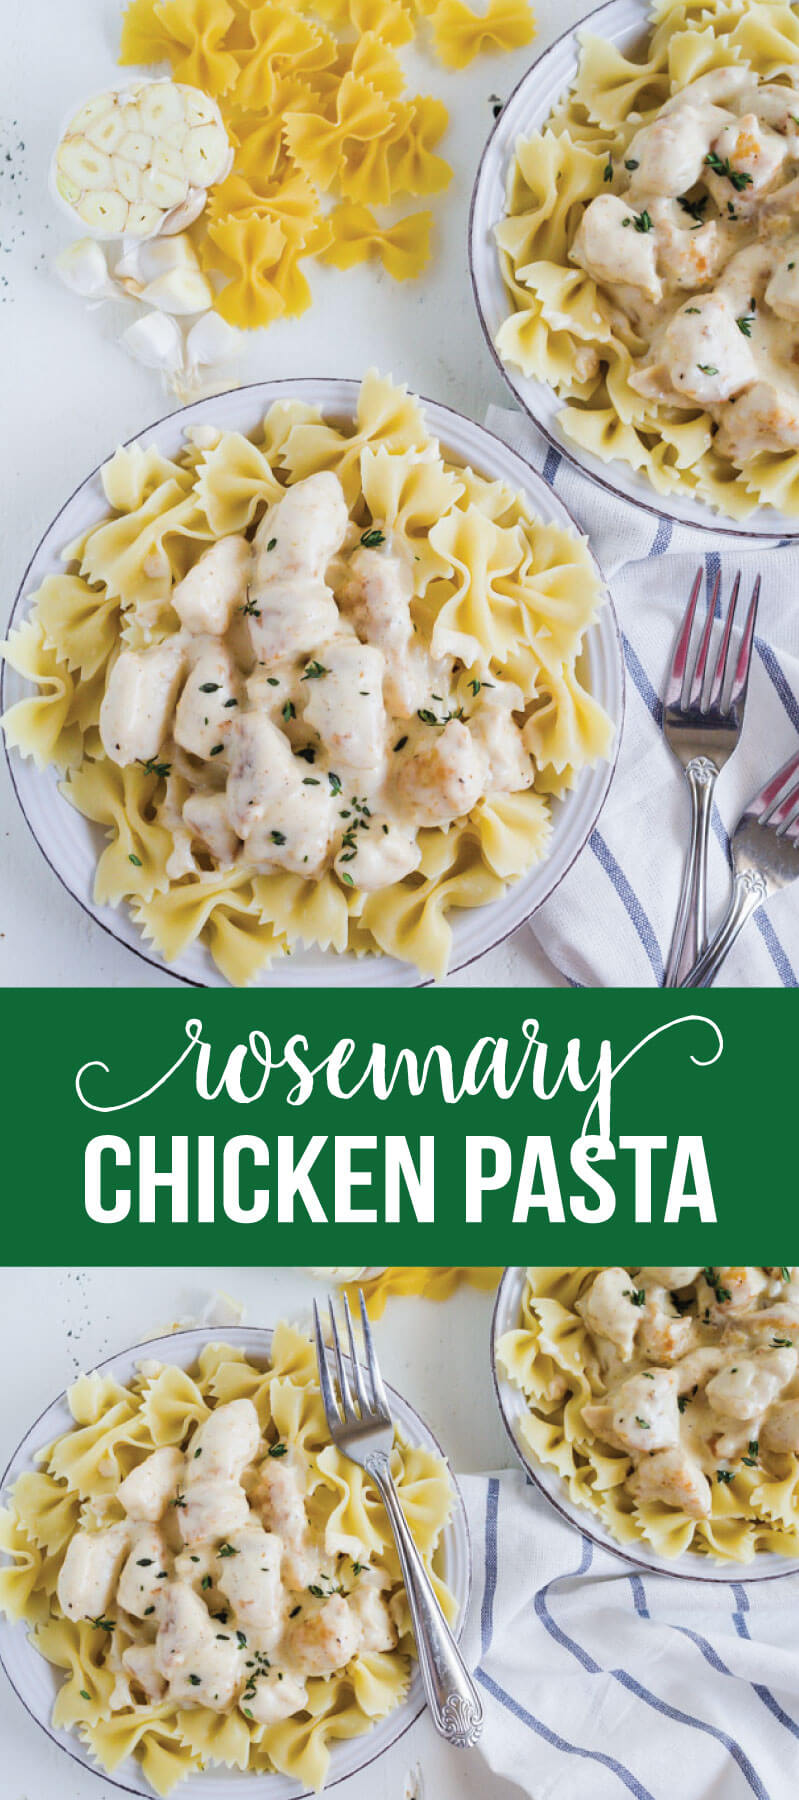 Rosemary Chicken Pasta - an easy main dish that has become a family favorite. from www.thirtyhandmadedays.com